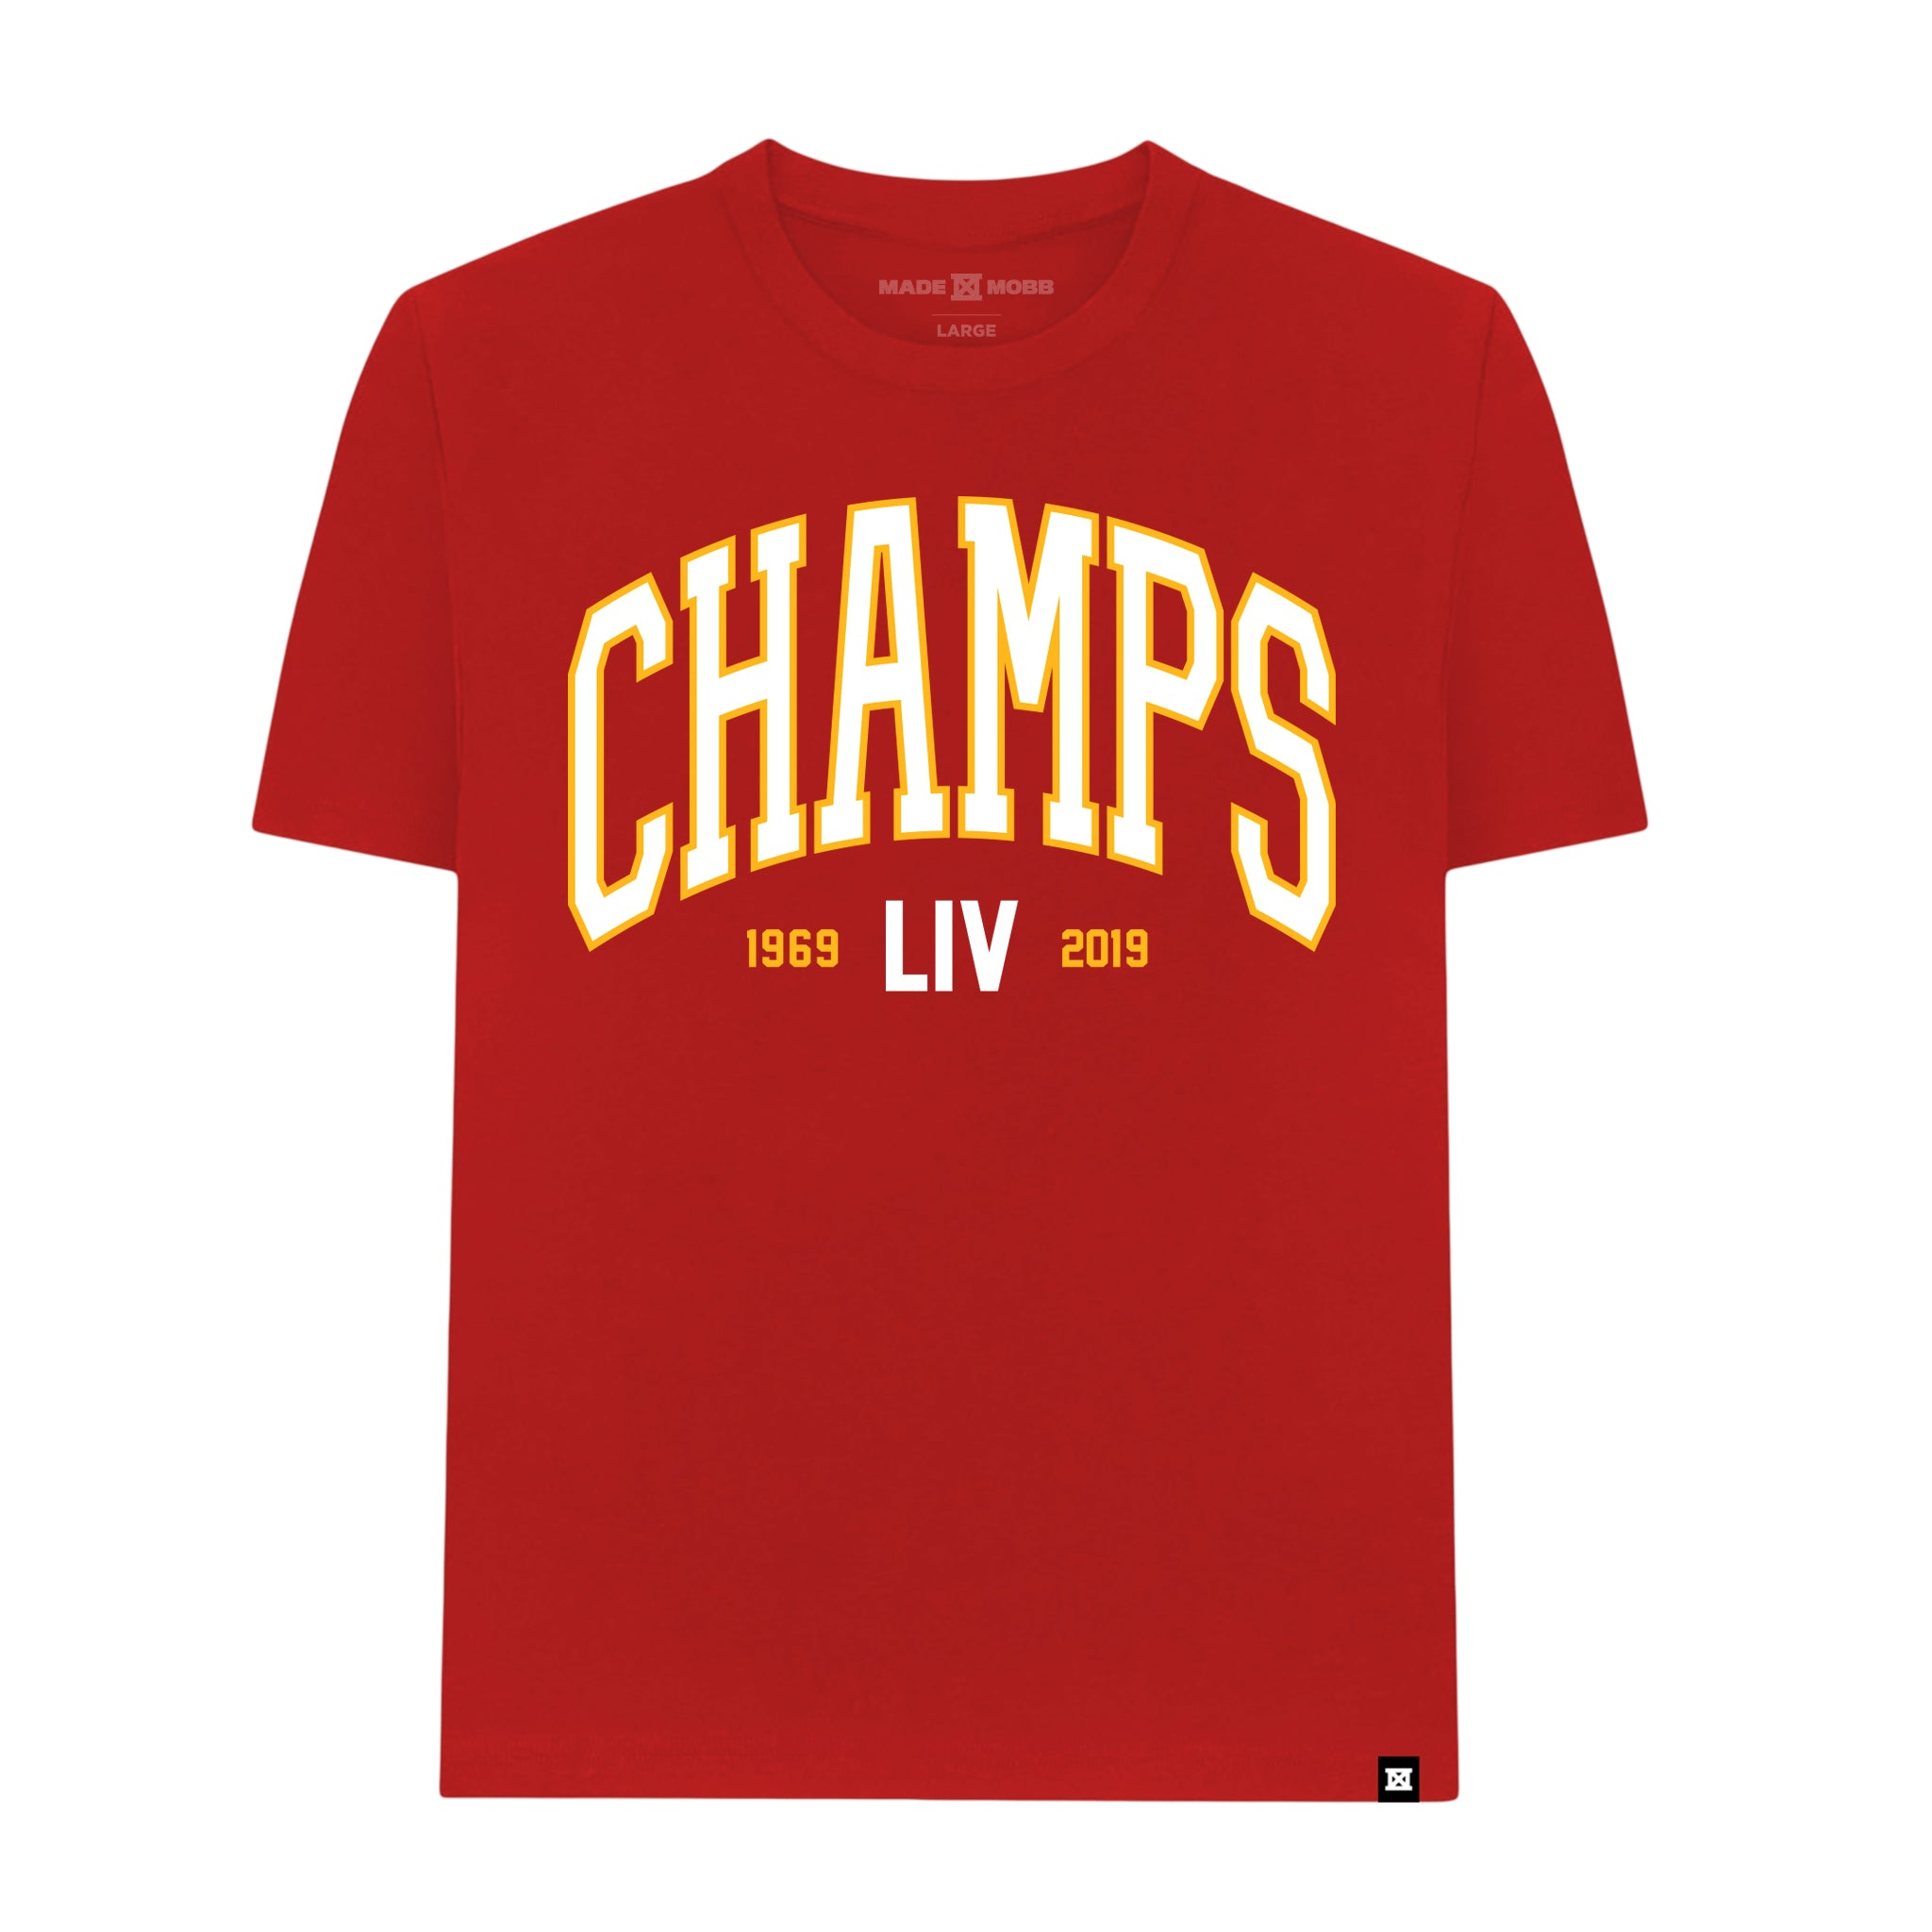 CHAMPS T-Shirt - Red